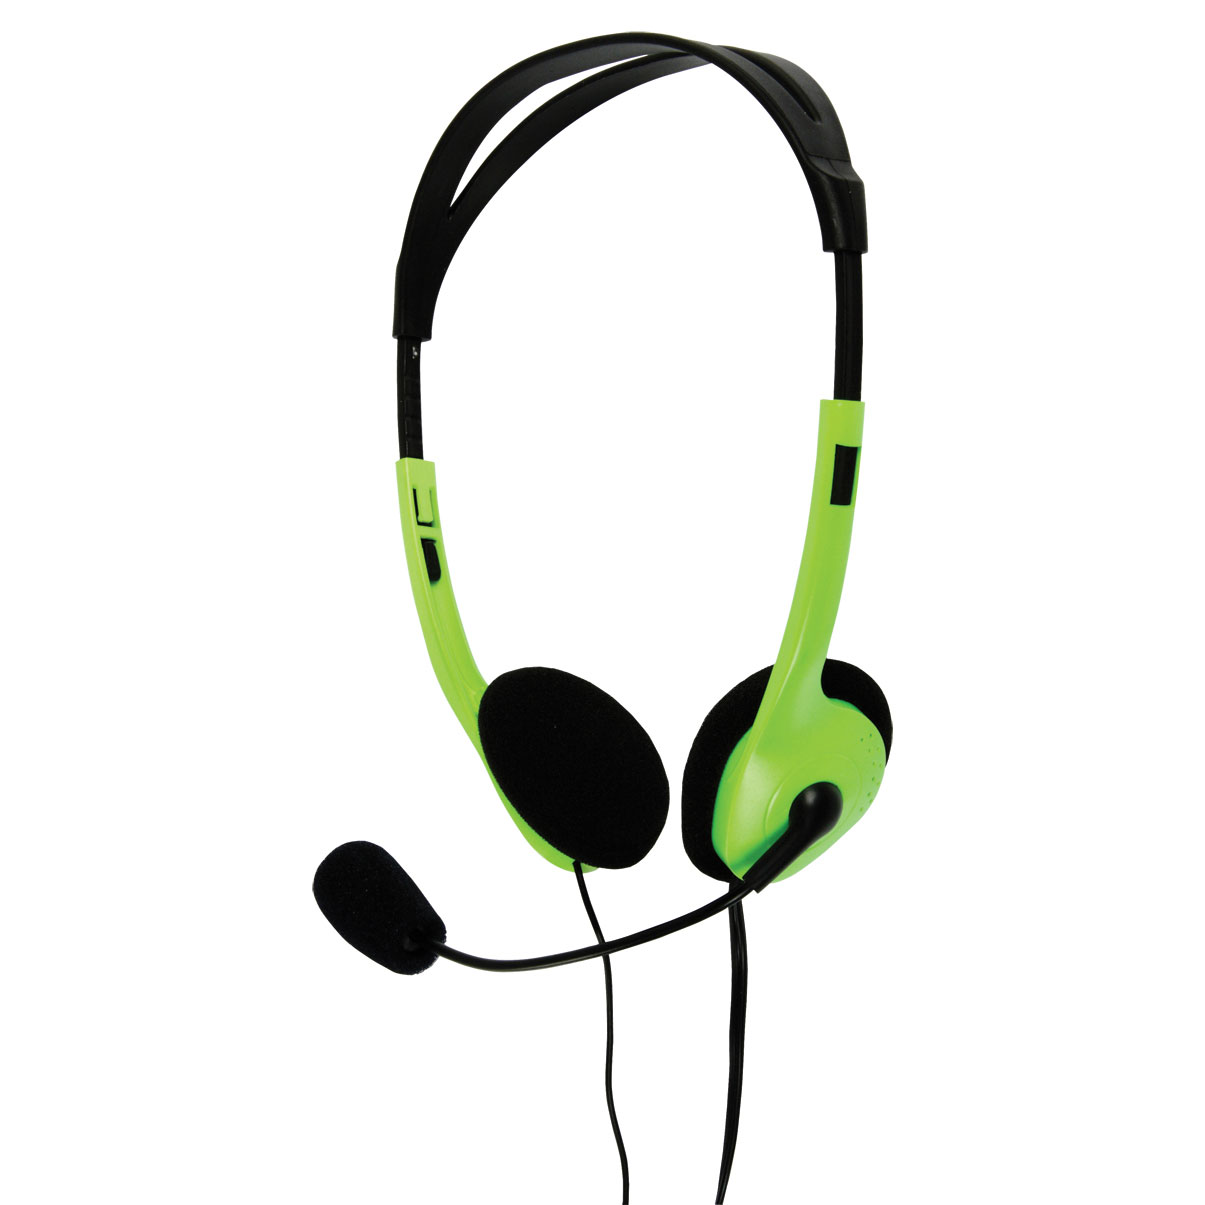 Multimedia Headphones with Flexible Microphone - in Green - CHST100GN